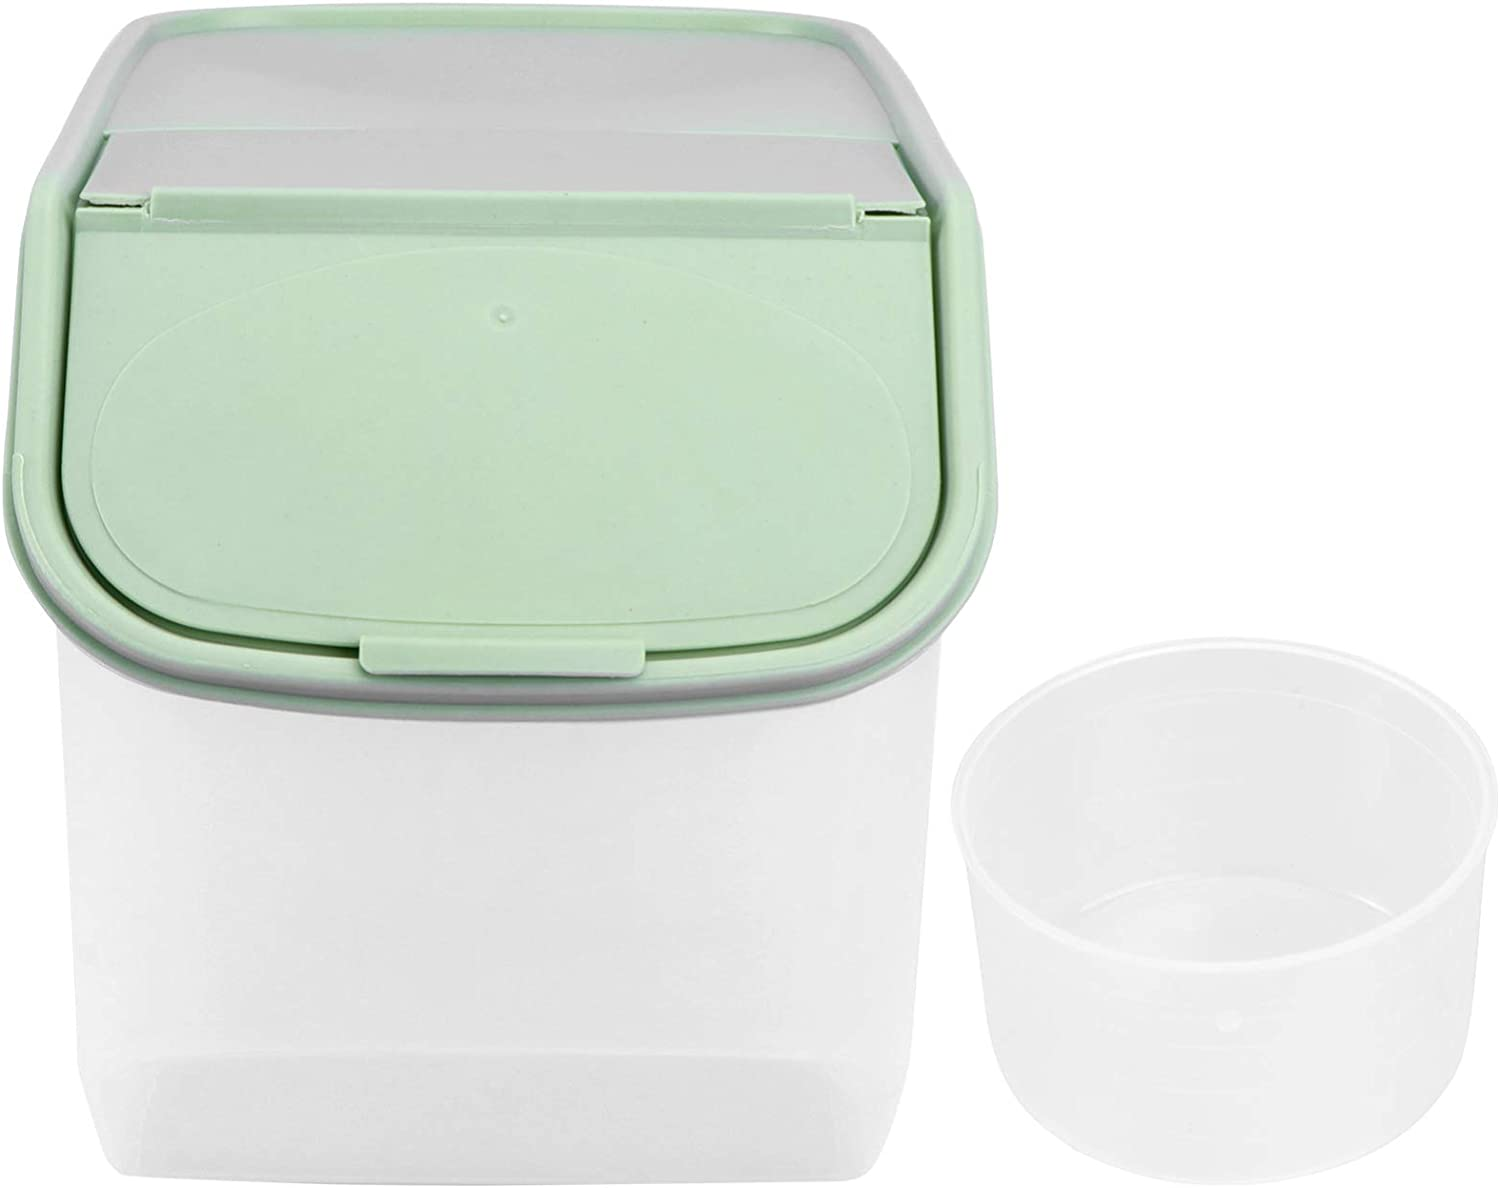 Hemoton Rice Storage Container, Plastic Large Rice Container Bin with Measuring Cup, Airtight Cereal Rice Dispenser, Flip-Top